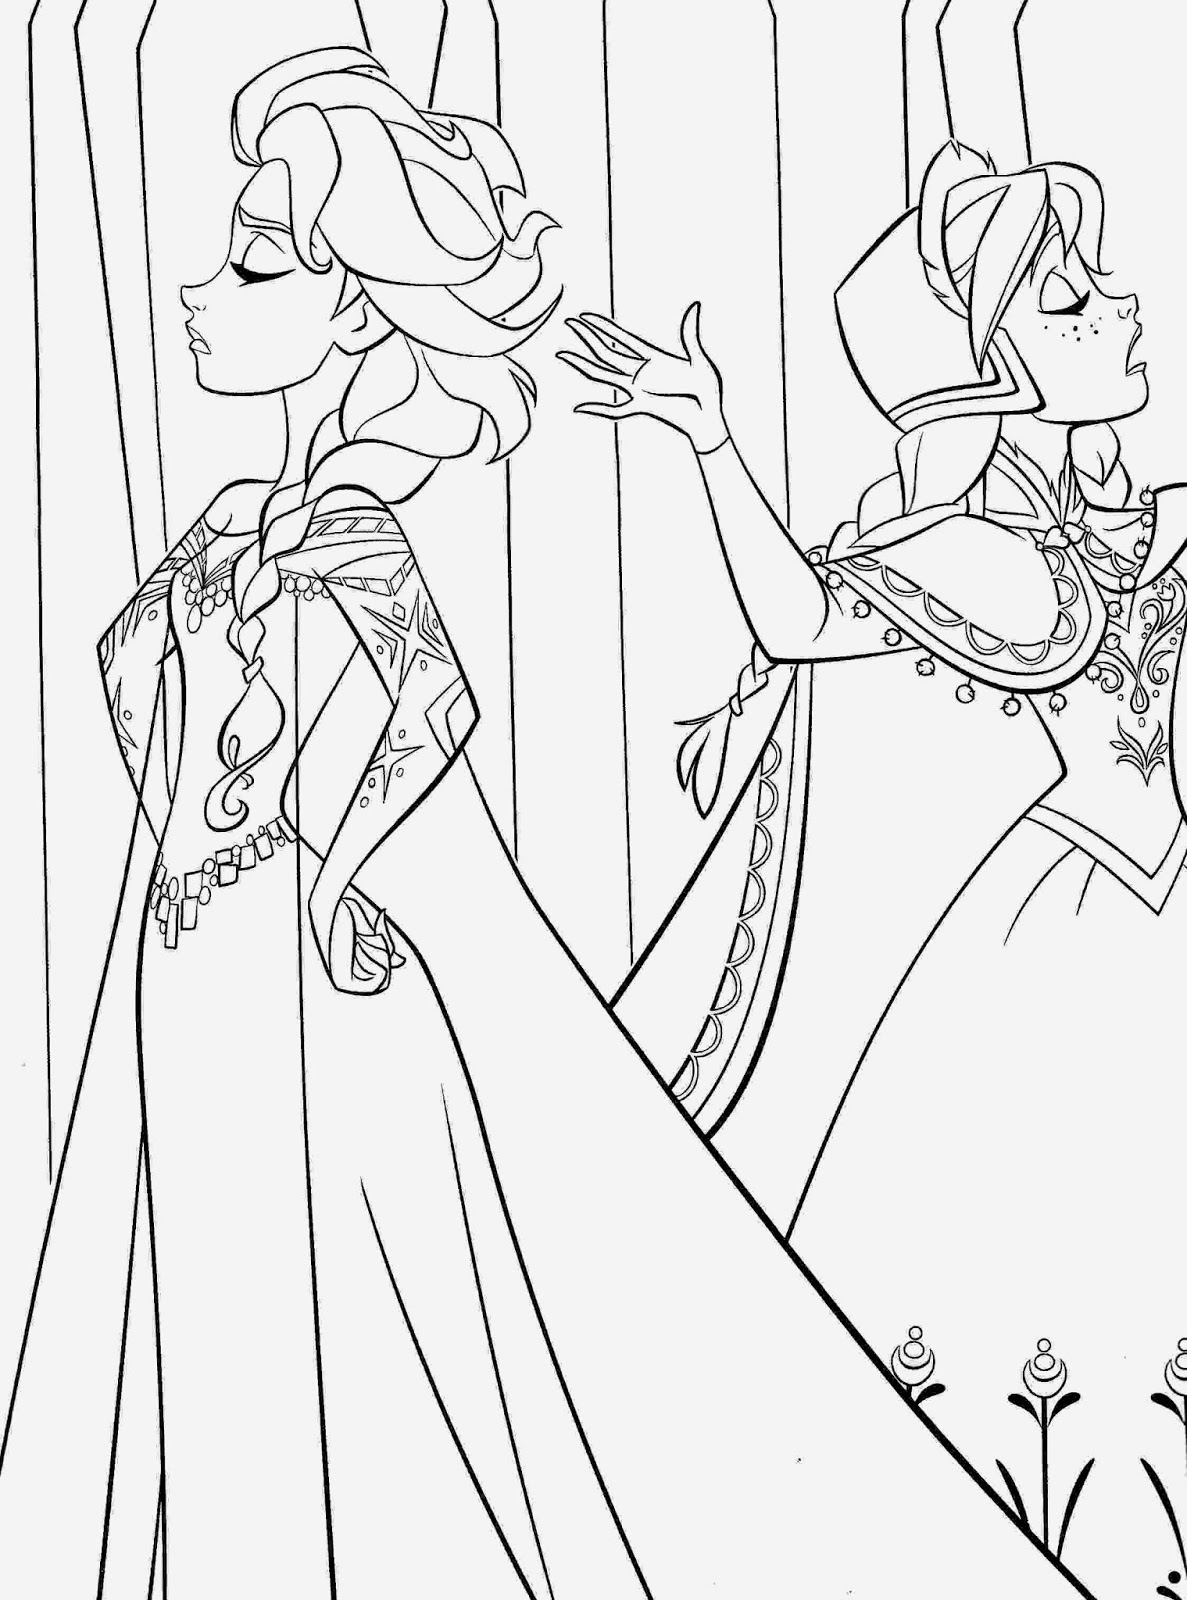 frozen elsa and anna coloring pages free frozen printable coloring activity pages plus free frozen anna and pages elsa coloring